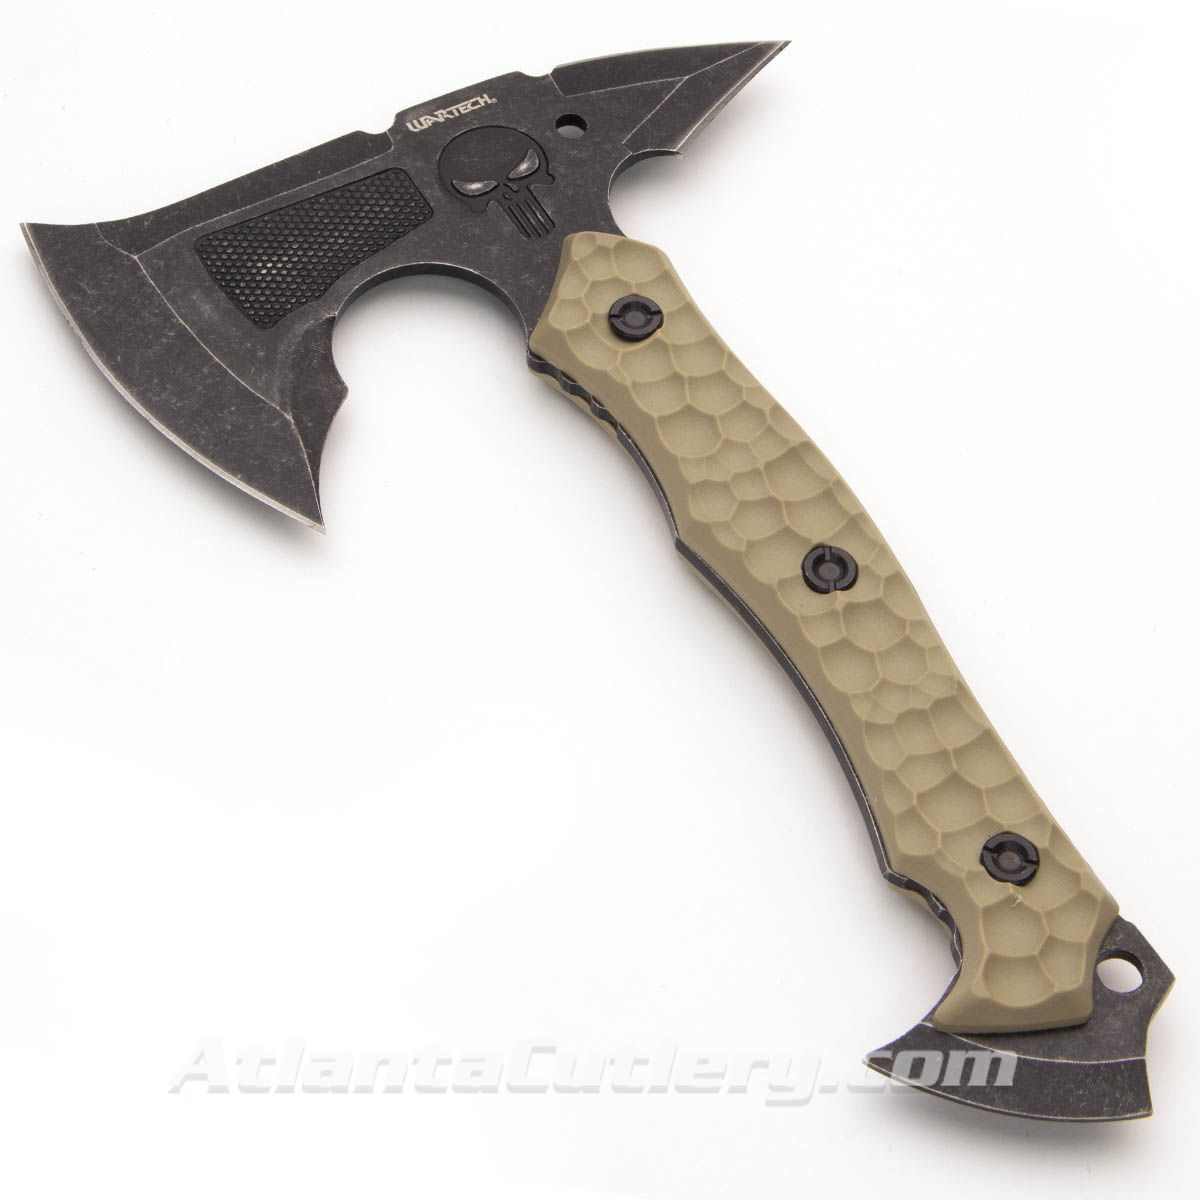 Camp Hatchet designed in USA is constructed from one-piece of CR13 stainless steel with textured G-10 scales for a good grip.